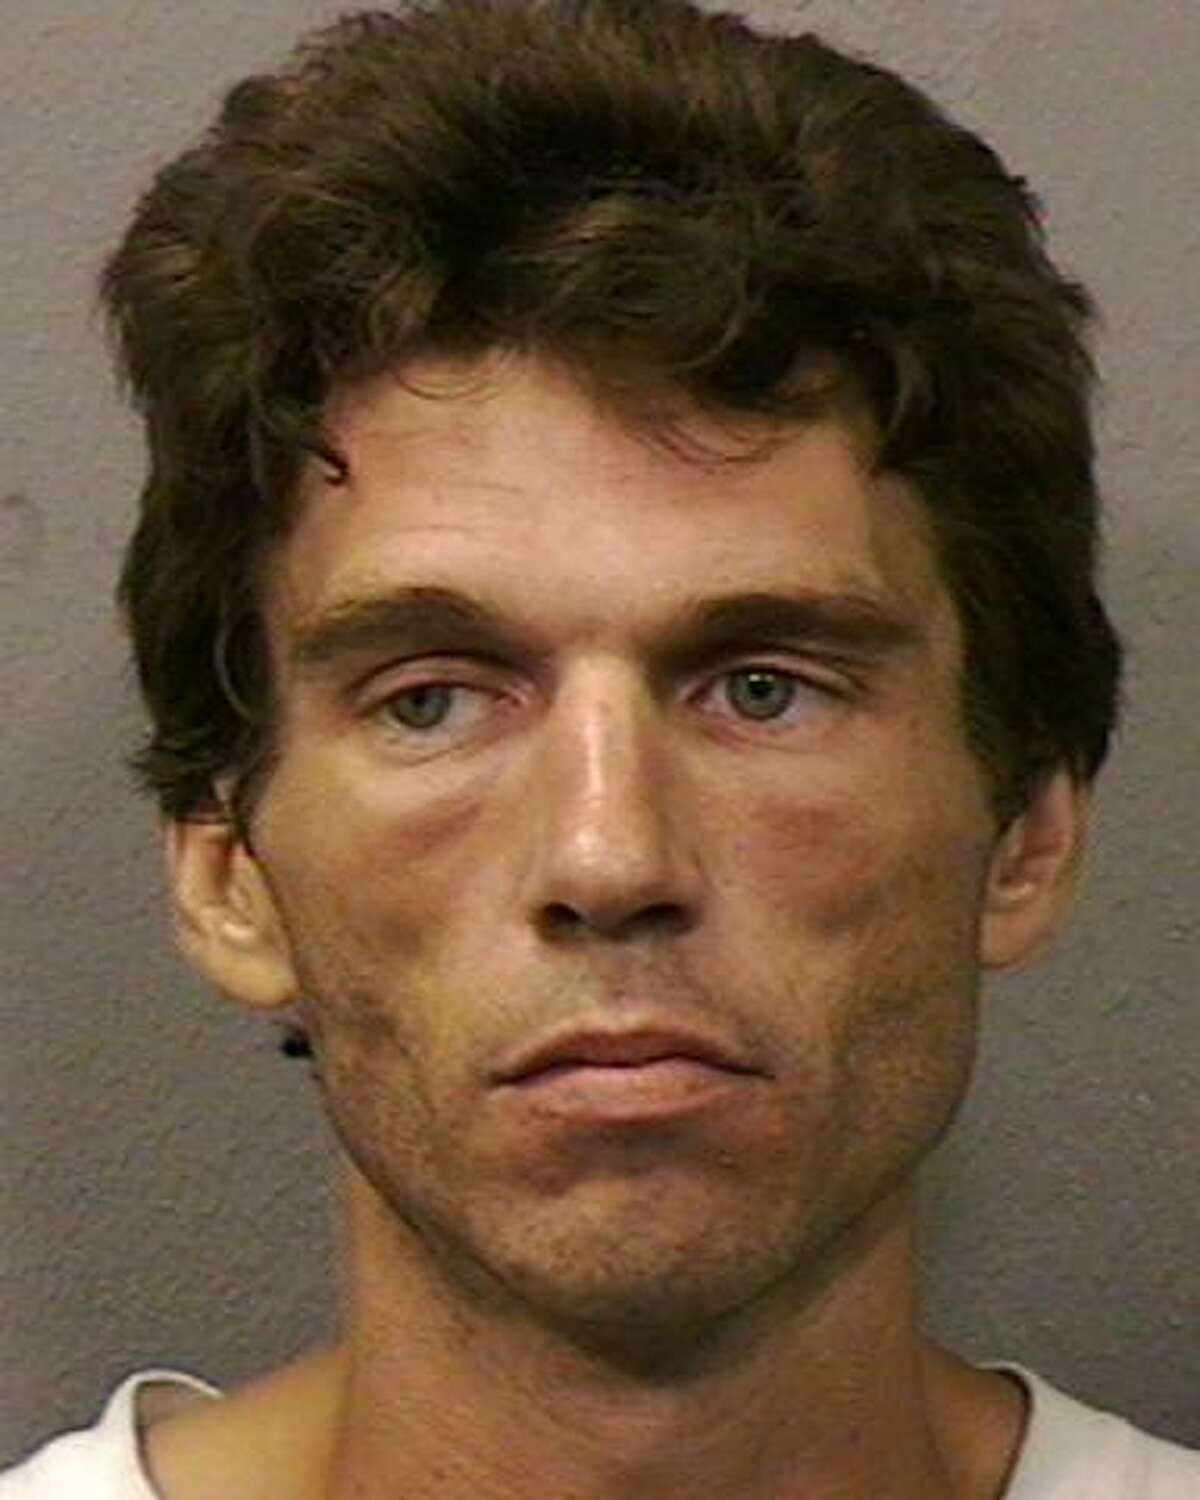 A Houston Police mugshot shows Matthew Roppolo, a 53-year-old Houston man housed at the McConnell Unit, who is the plaintiff in a federal civil rights case seeking class action status for all Texas inmates infected with hepatitis C. The lawsuit claims the Texas Department of Criminal Justice is denying most inmates with the infection access to medicine that is the standard of care and will cure them of the disease.